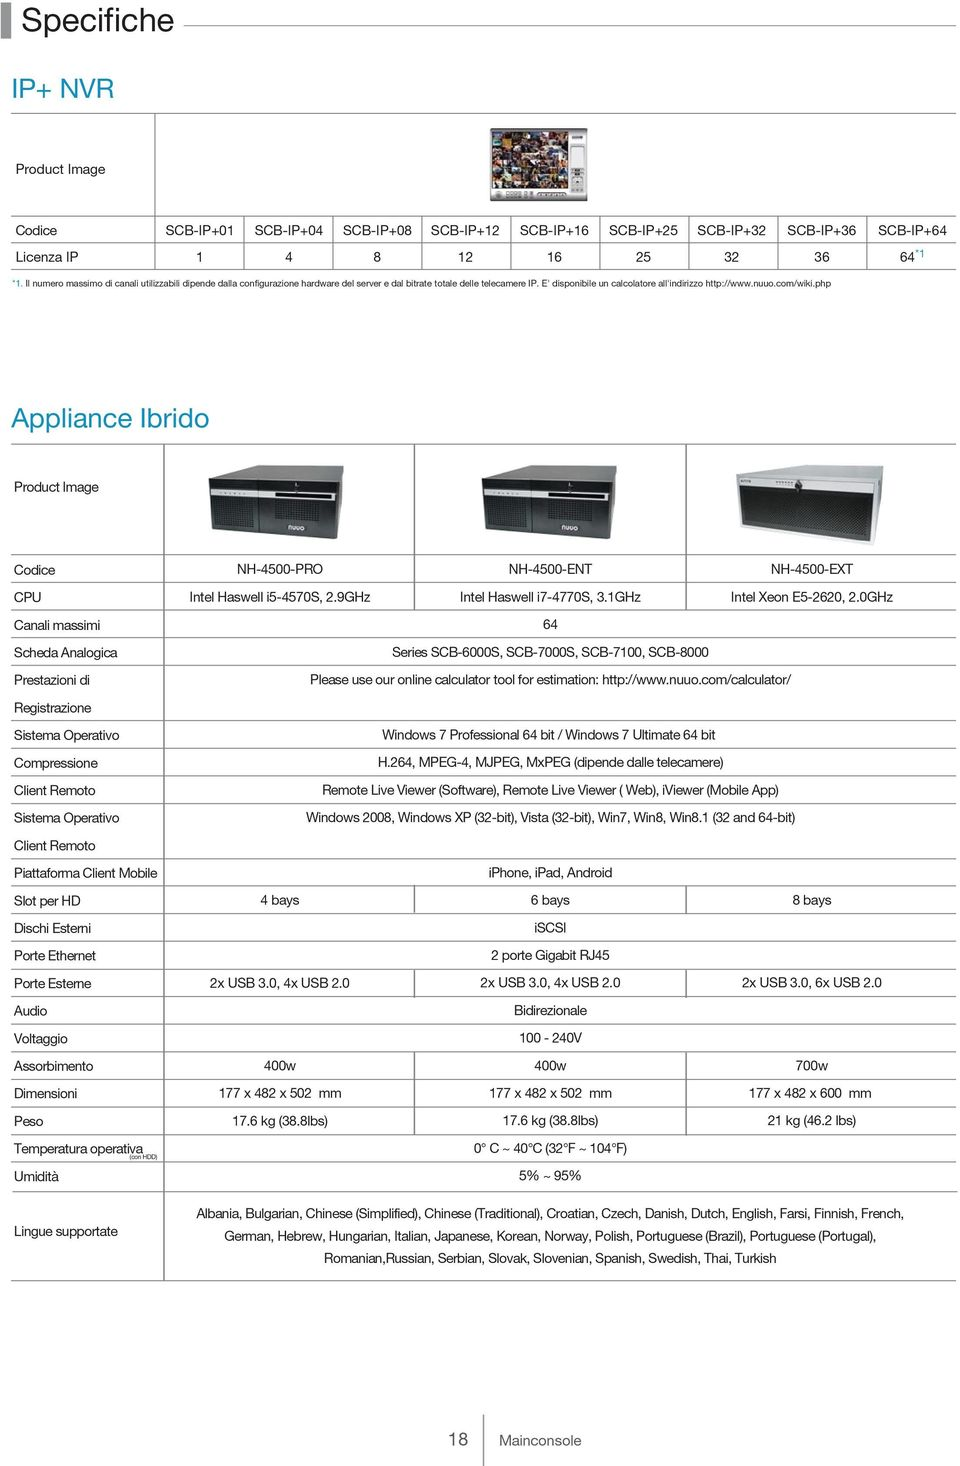 php Appliance Ibrido Product Image Codice NH-4500-PRO NH-4500-ENT NH-4500-EXT CPU Intel Haswell i5-4570s, 2.9GHz Intel Haswell i7-4770s, 3.1GHz Intel Xeon E5-2620, 2.